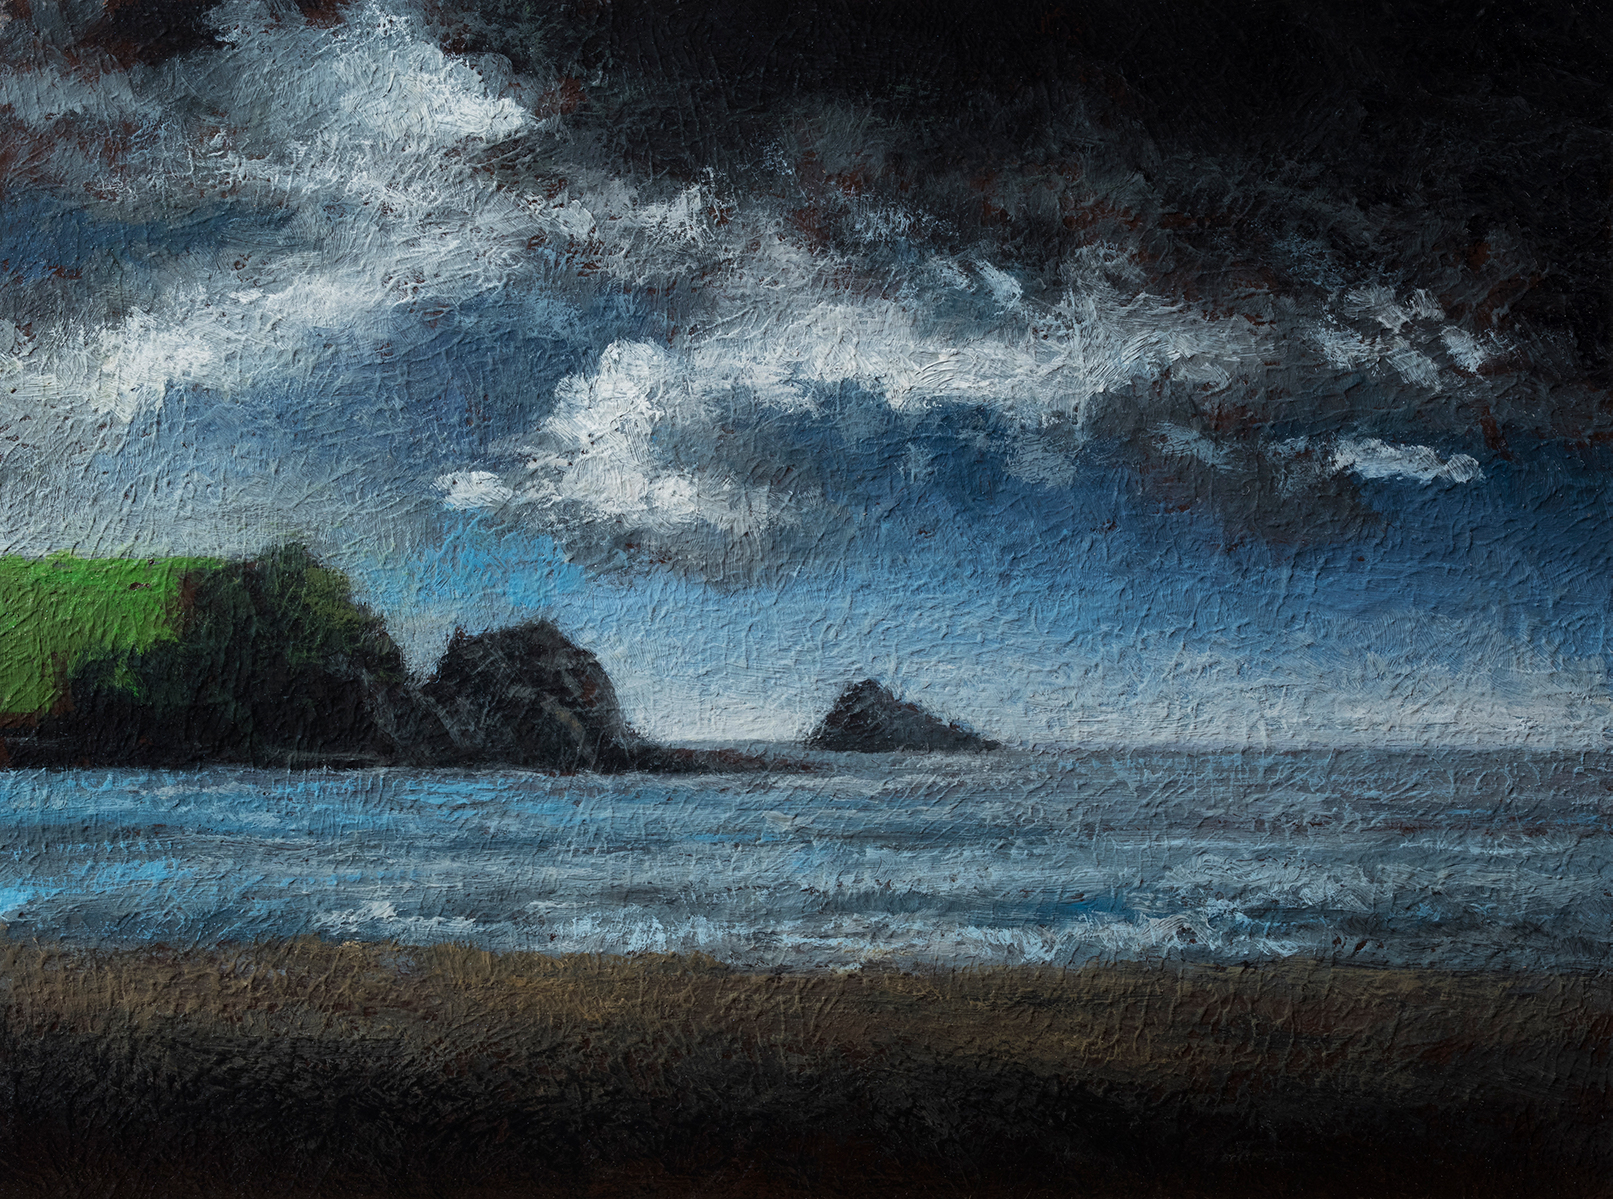 Cloudy Beach by M Francis McCarthy - 6x8 Oil on Wood Panel